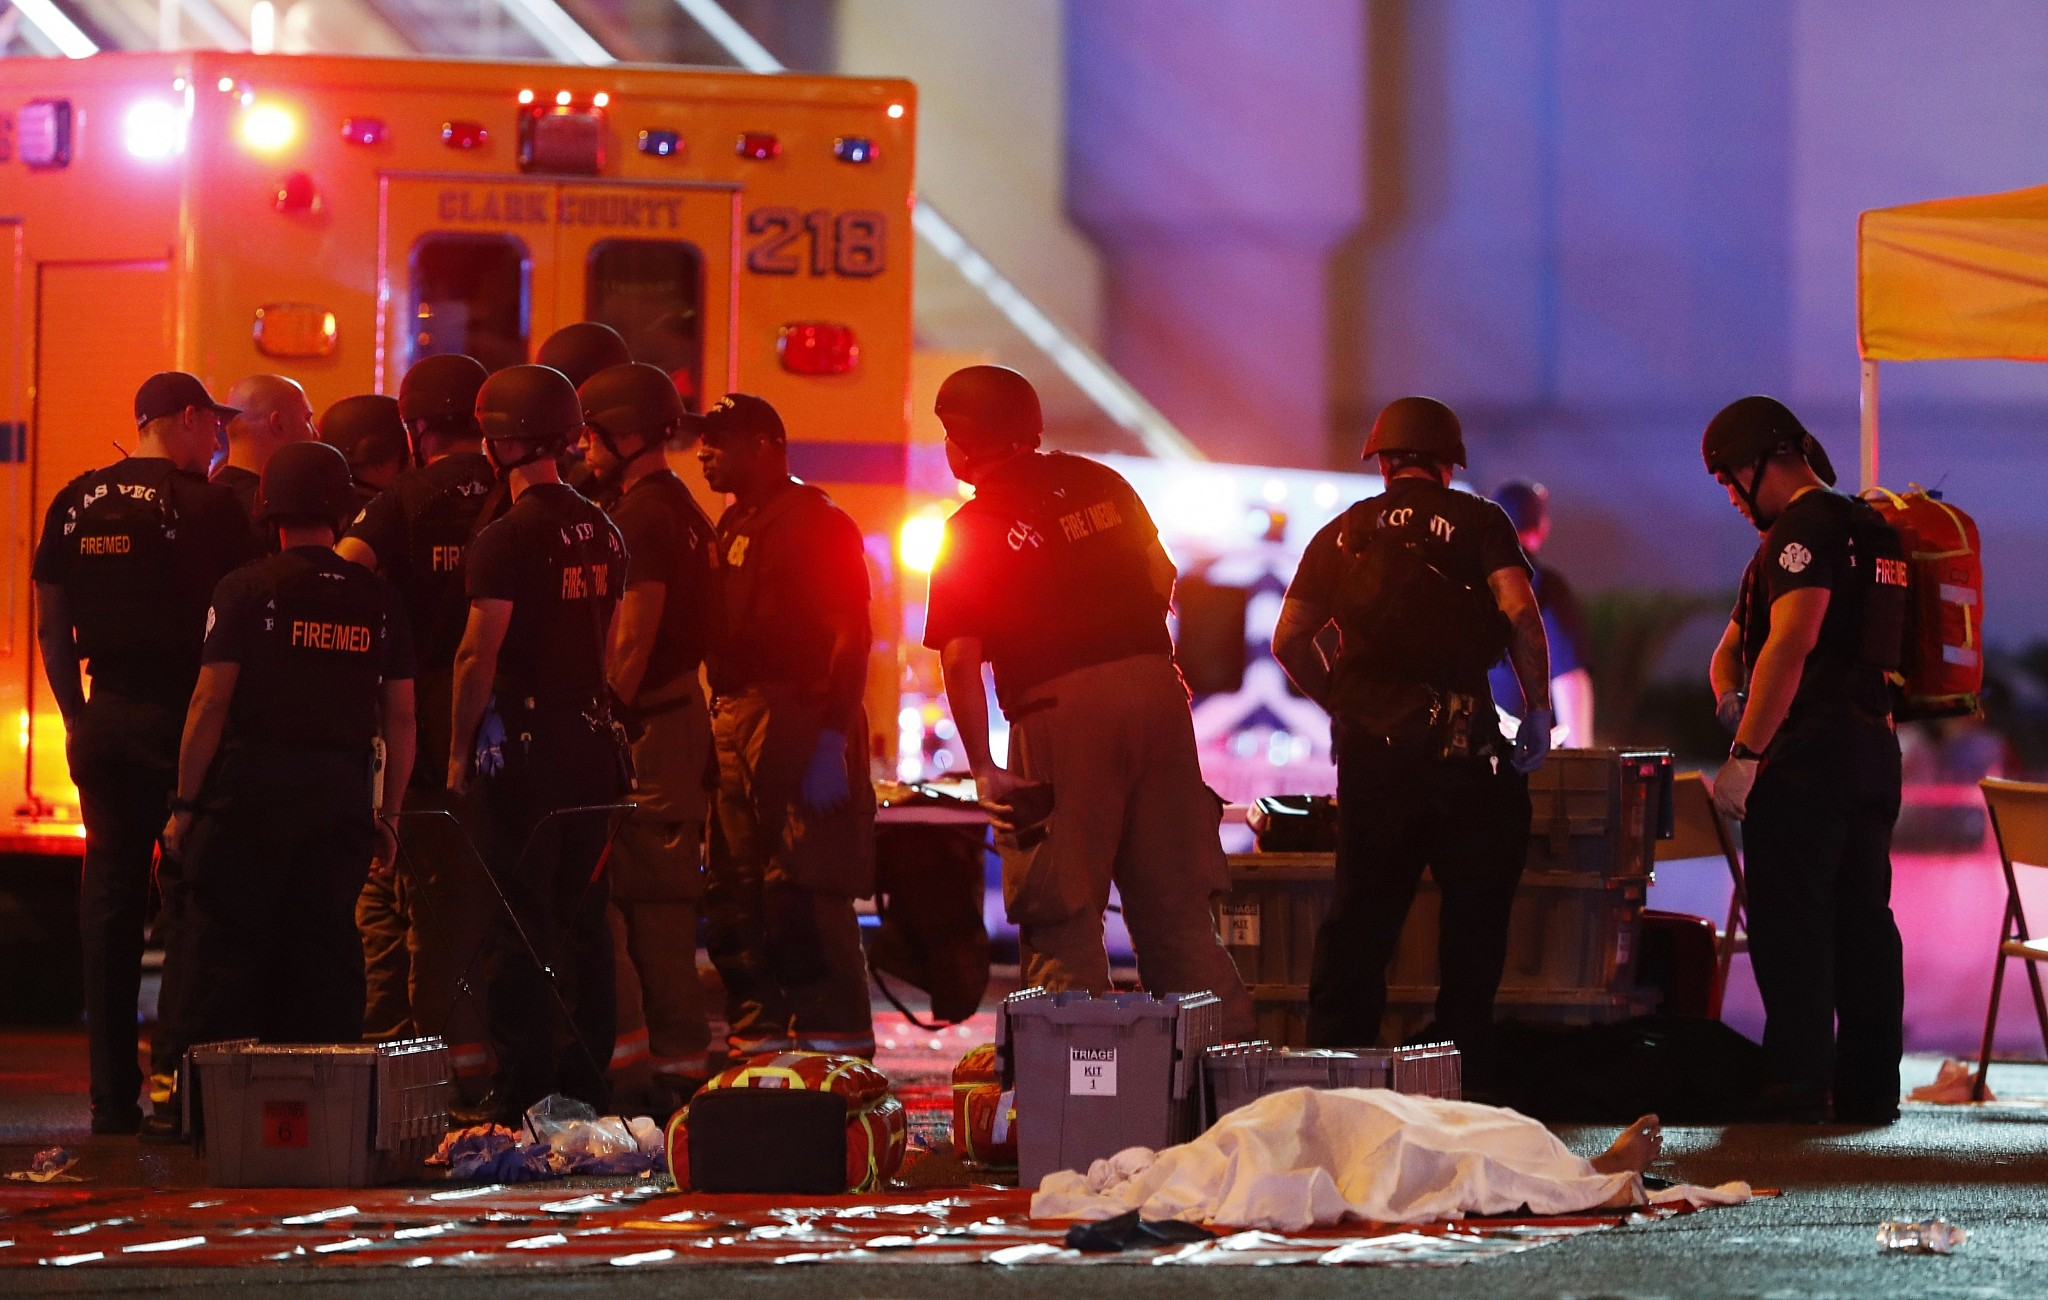 Death toll in Las Vegas rises to at least 58 after night of horror | The Times of Israel